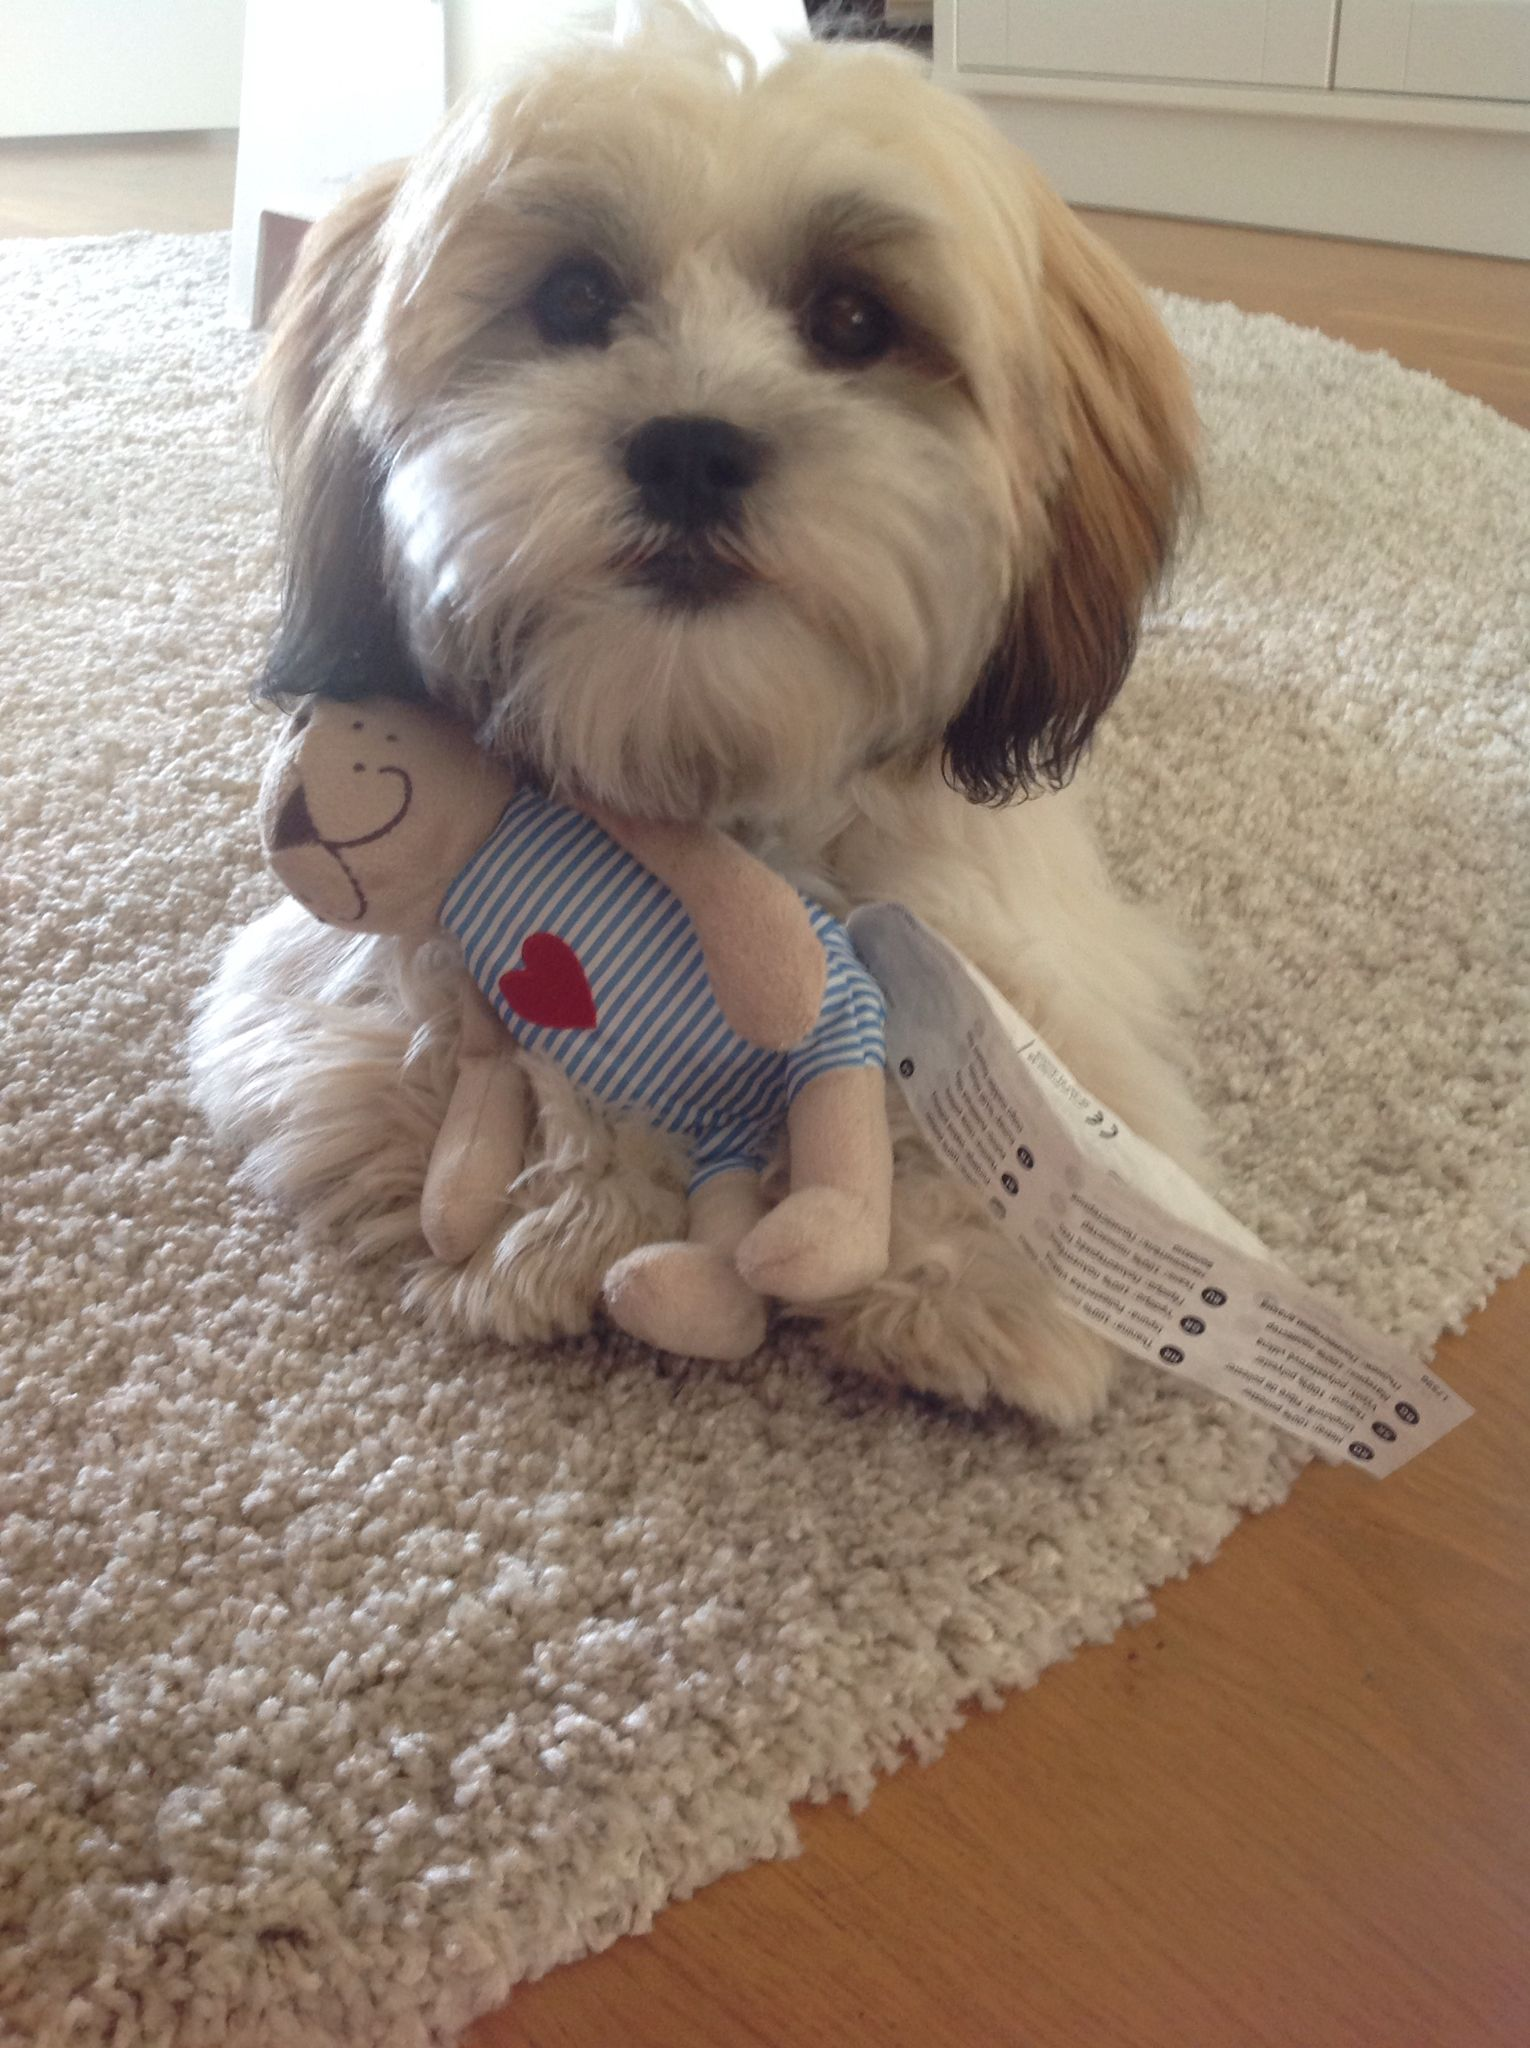 Shichon puppies for sale in kentucky - My Little Moses 7 Months Old Shichon Puppy